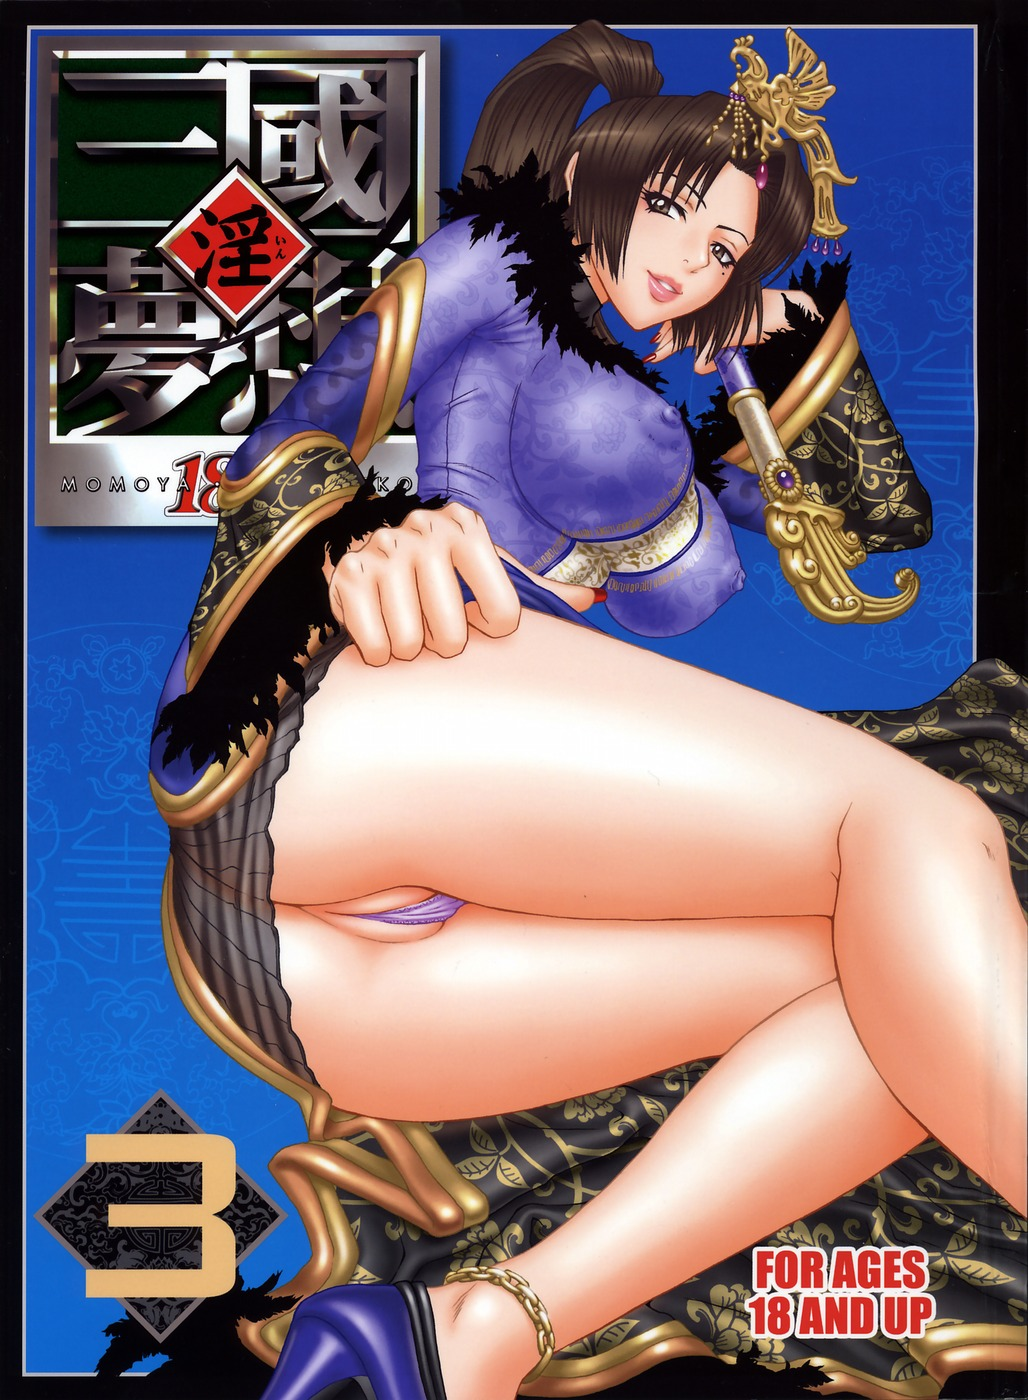 Lady warriors hentai erotic uncensored girls